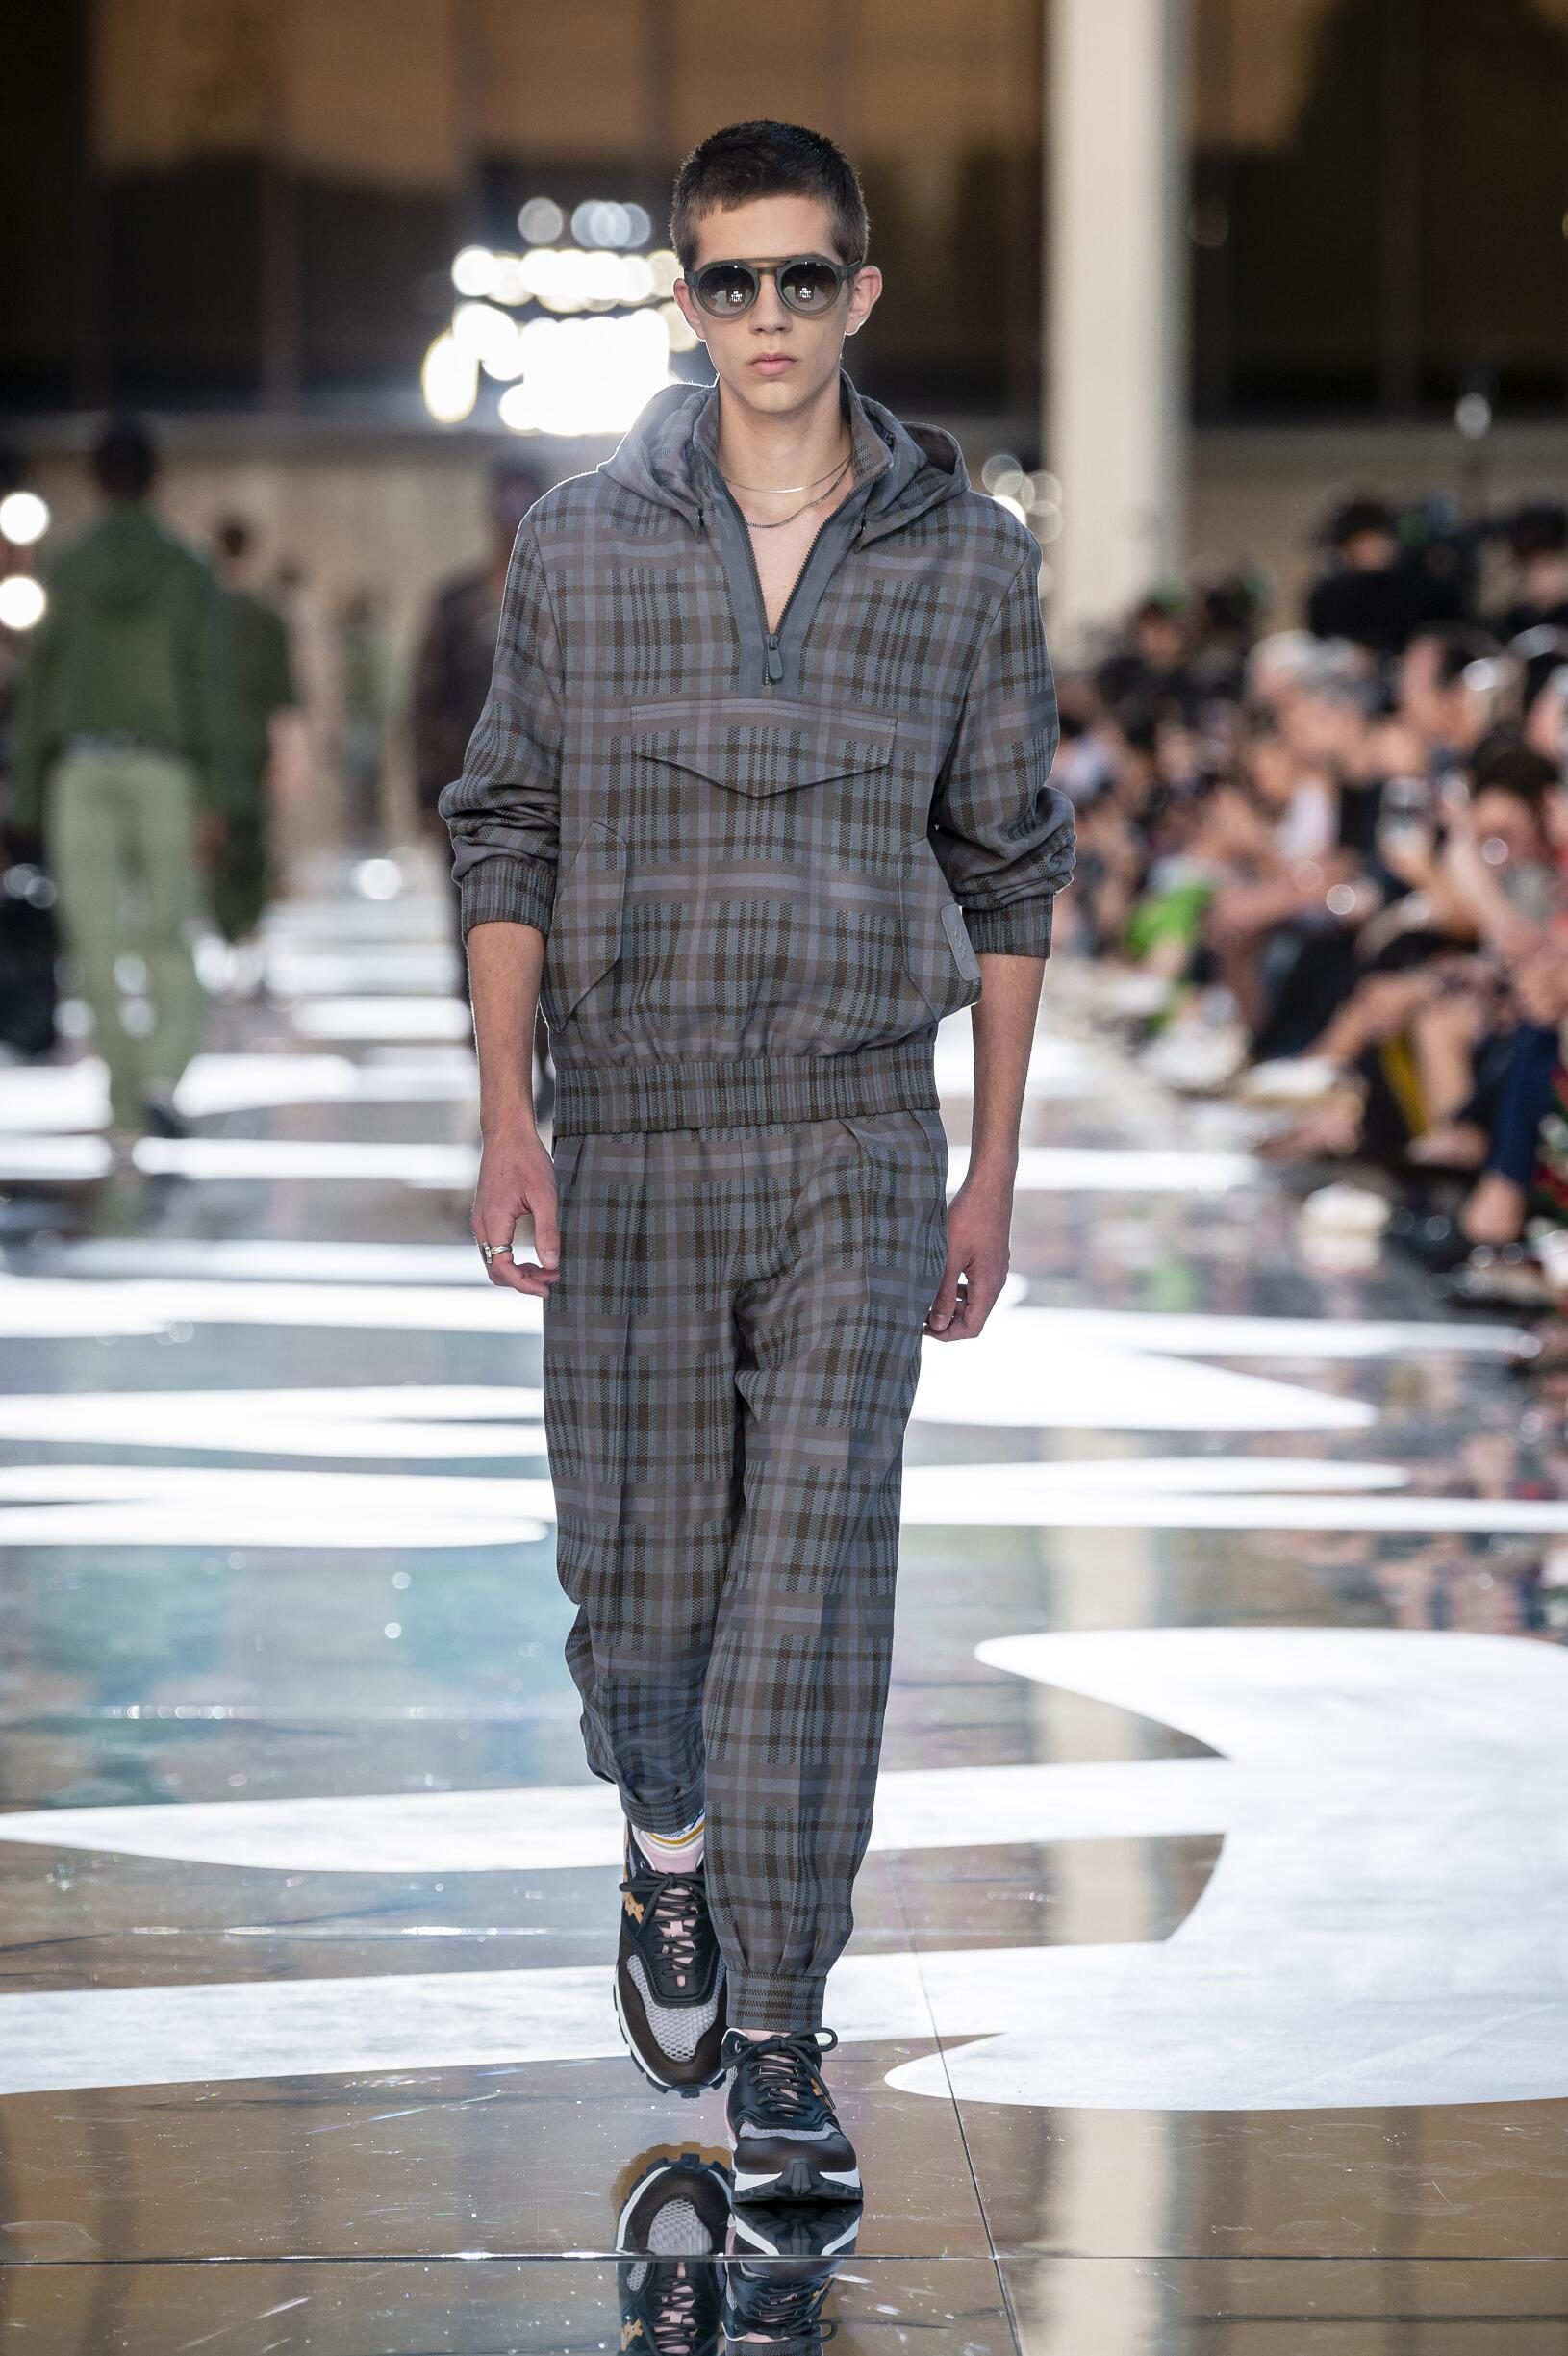 Ermenegildo Zegna Couture Spring Summer 2019 Mens Collection Milan Fashion Week